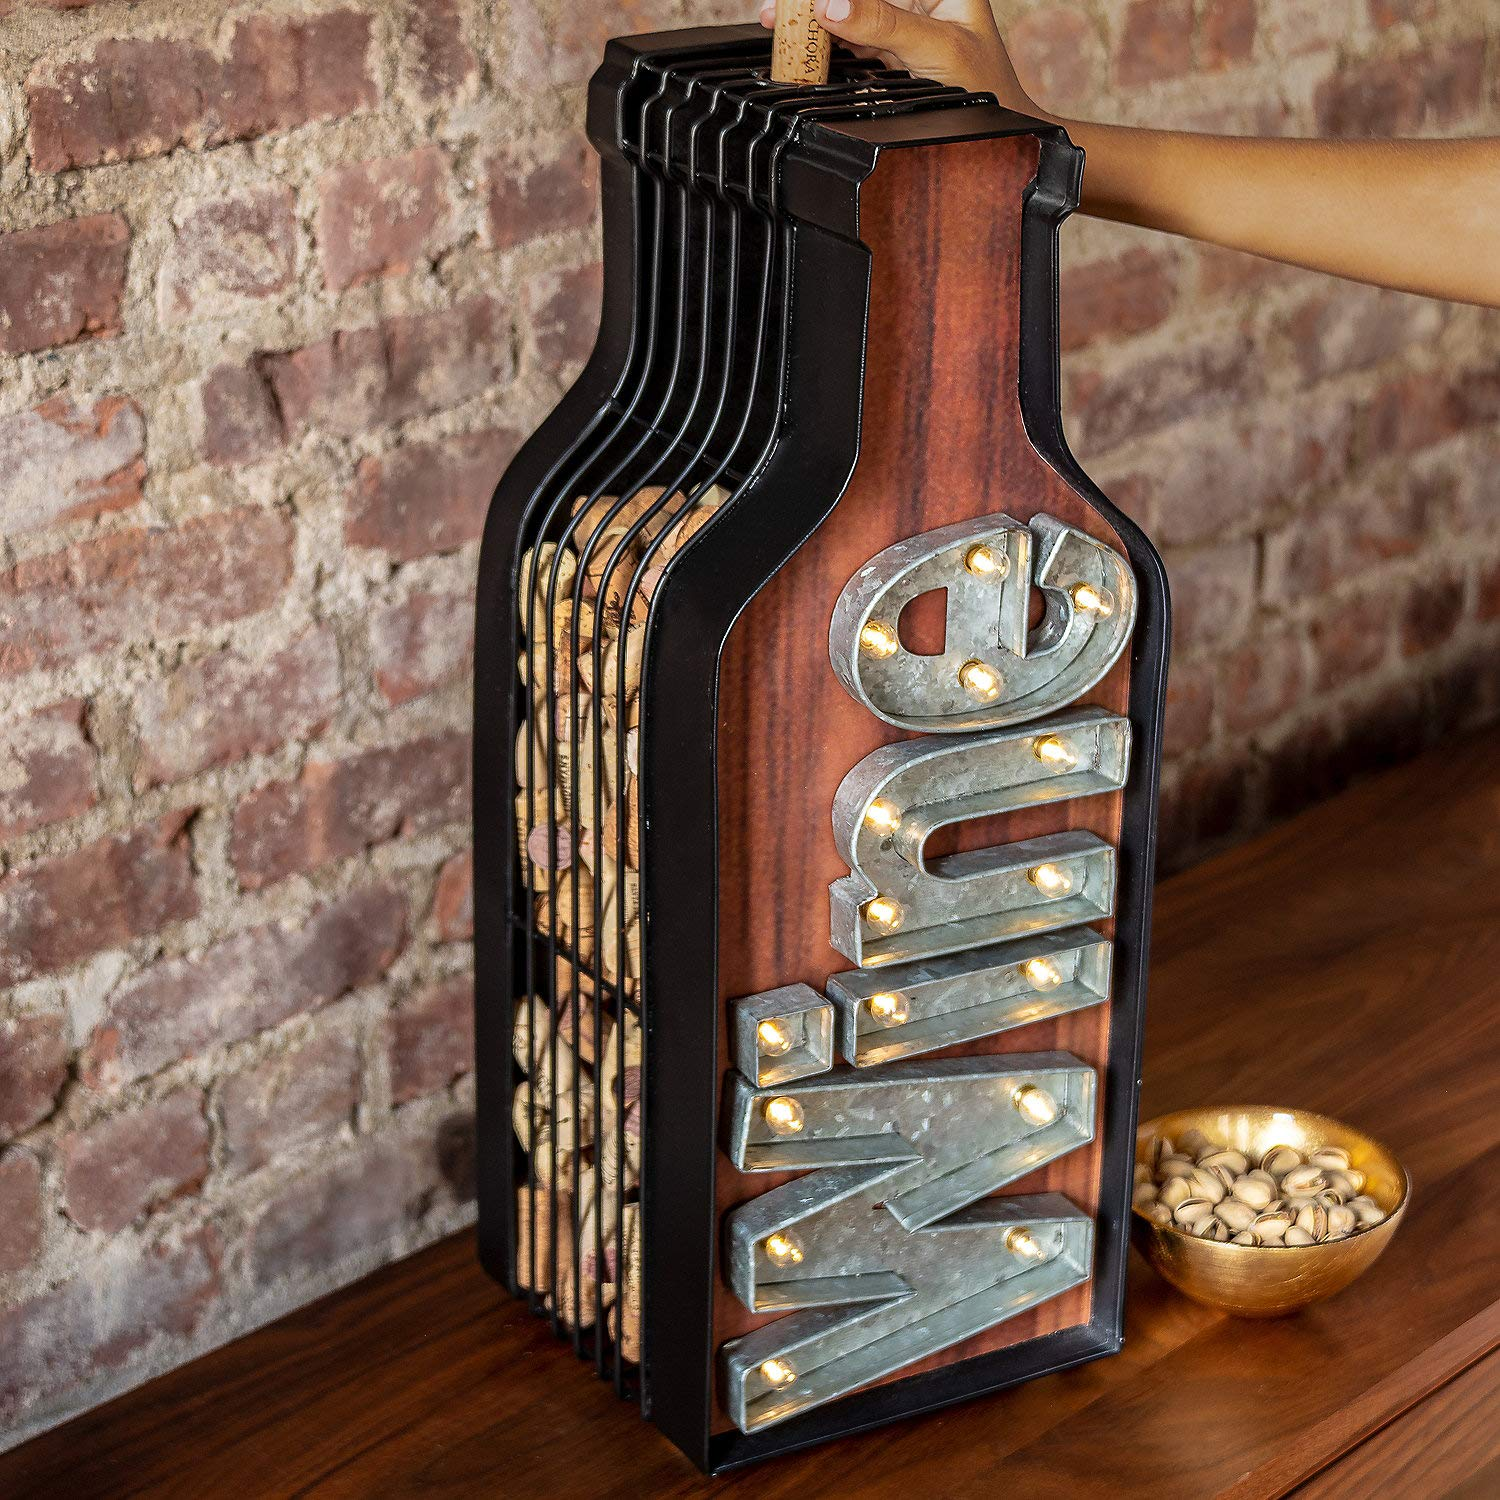 Lighted Wine Bottle Cork Catcher by Wine Enthusiast (Image #3)